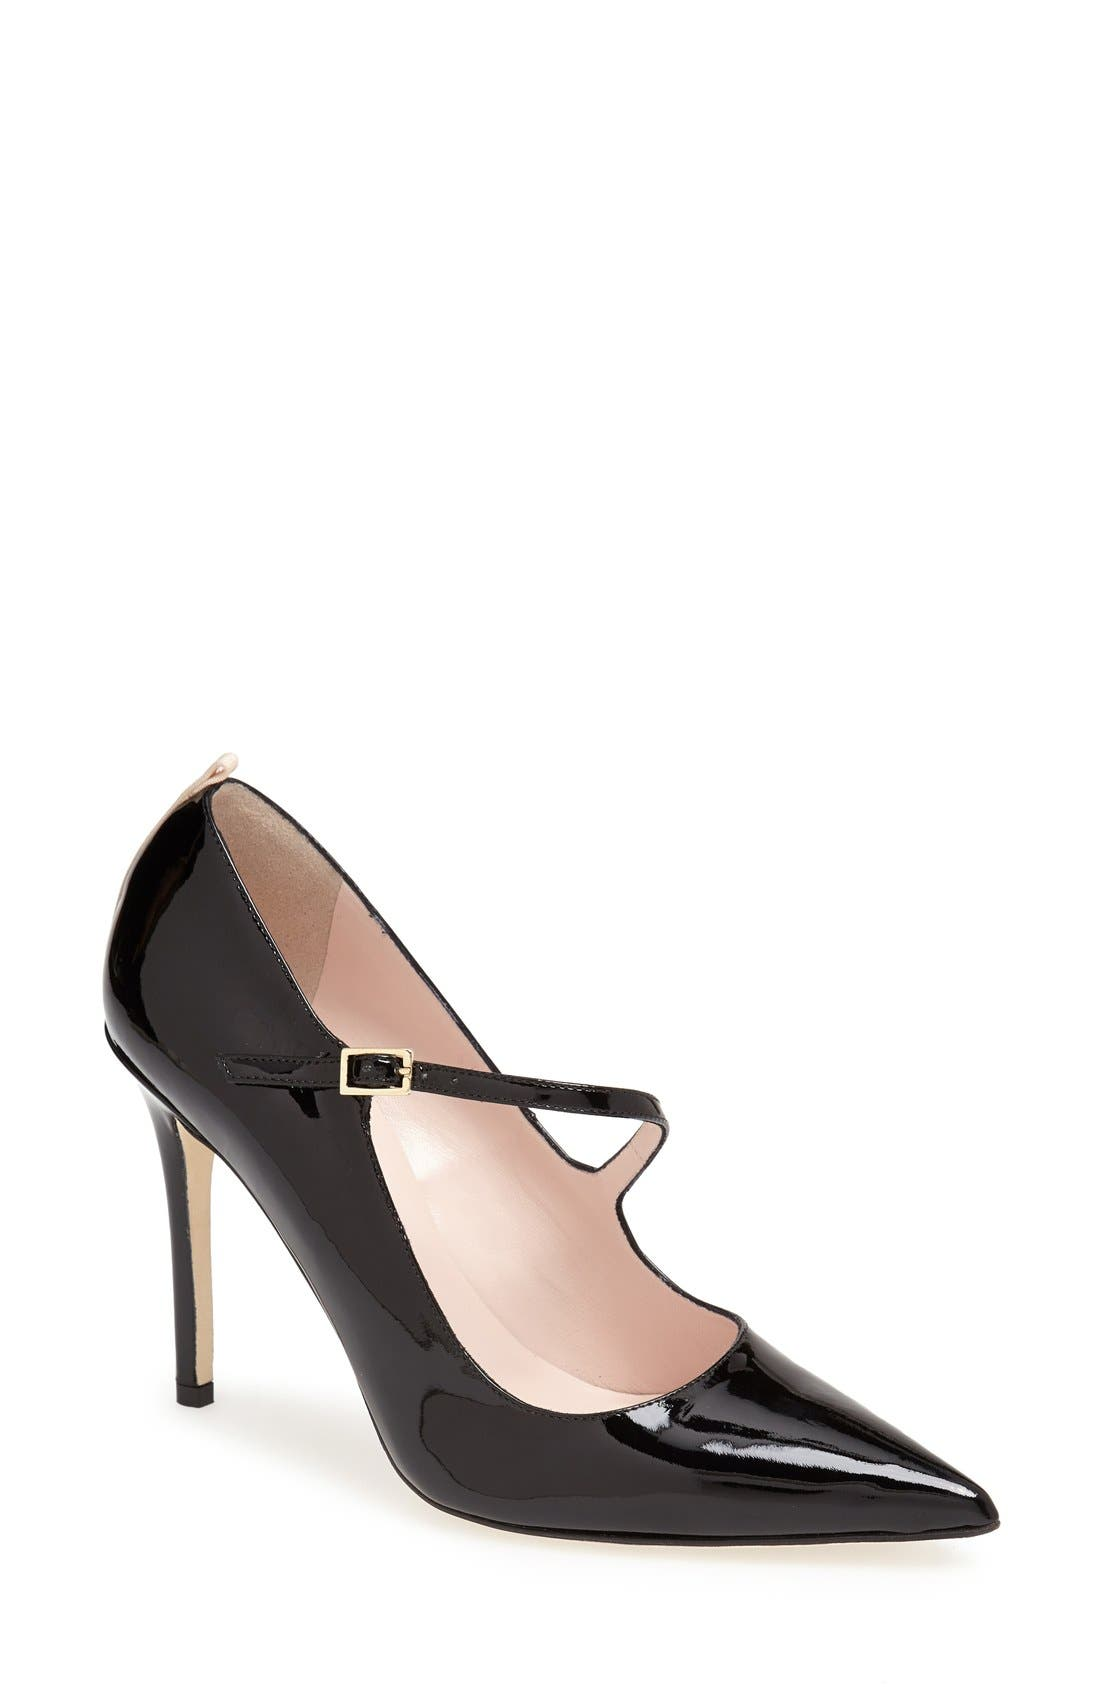 'Diana' Pump,                             Main thumbnail 1, color,                             003